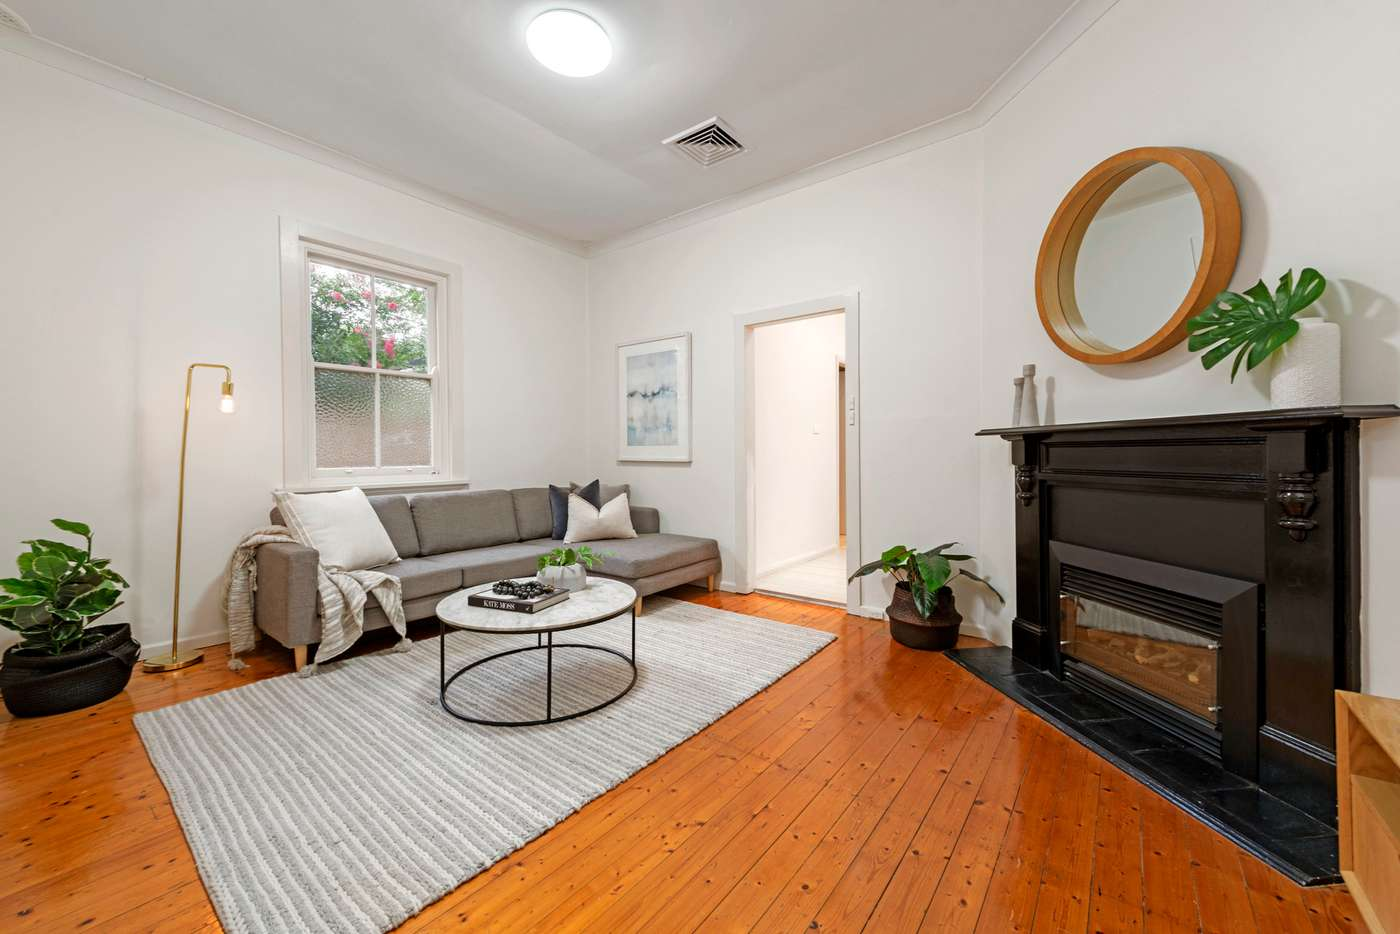 Fifth view of Homely house listing, 16 Broughton Street, Drummoyne NSW 2047